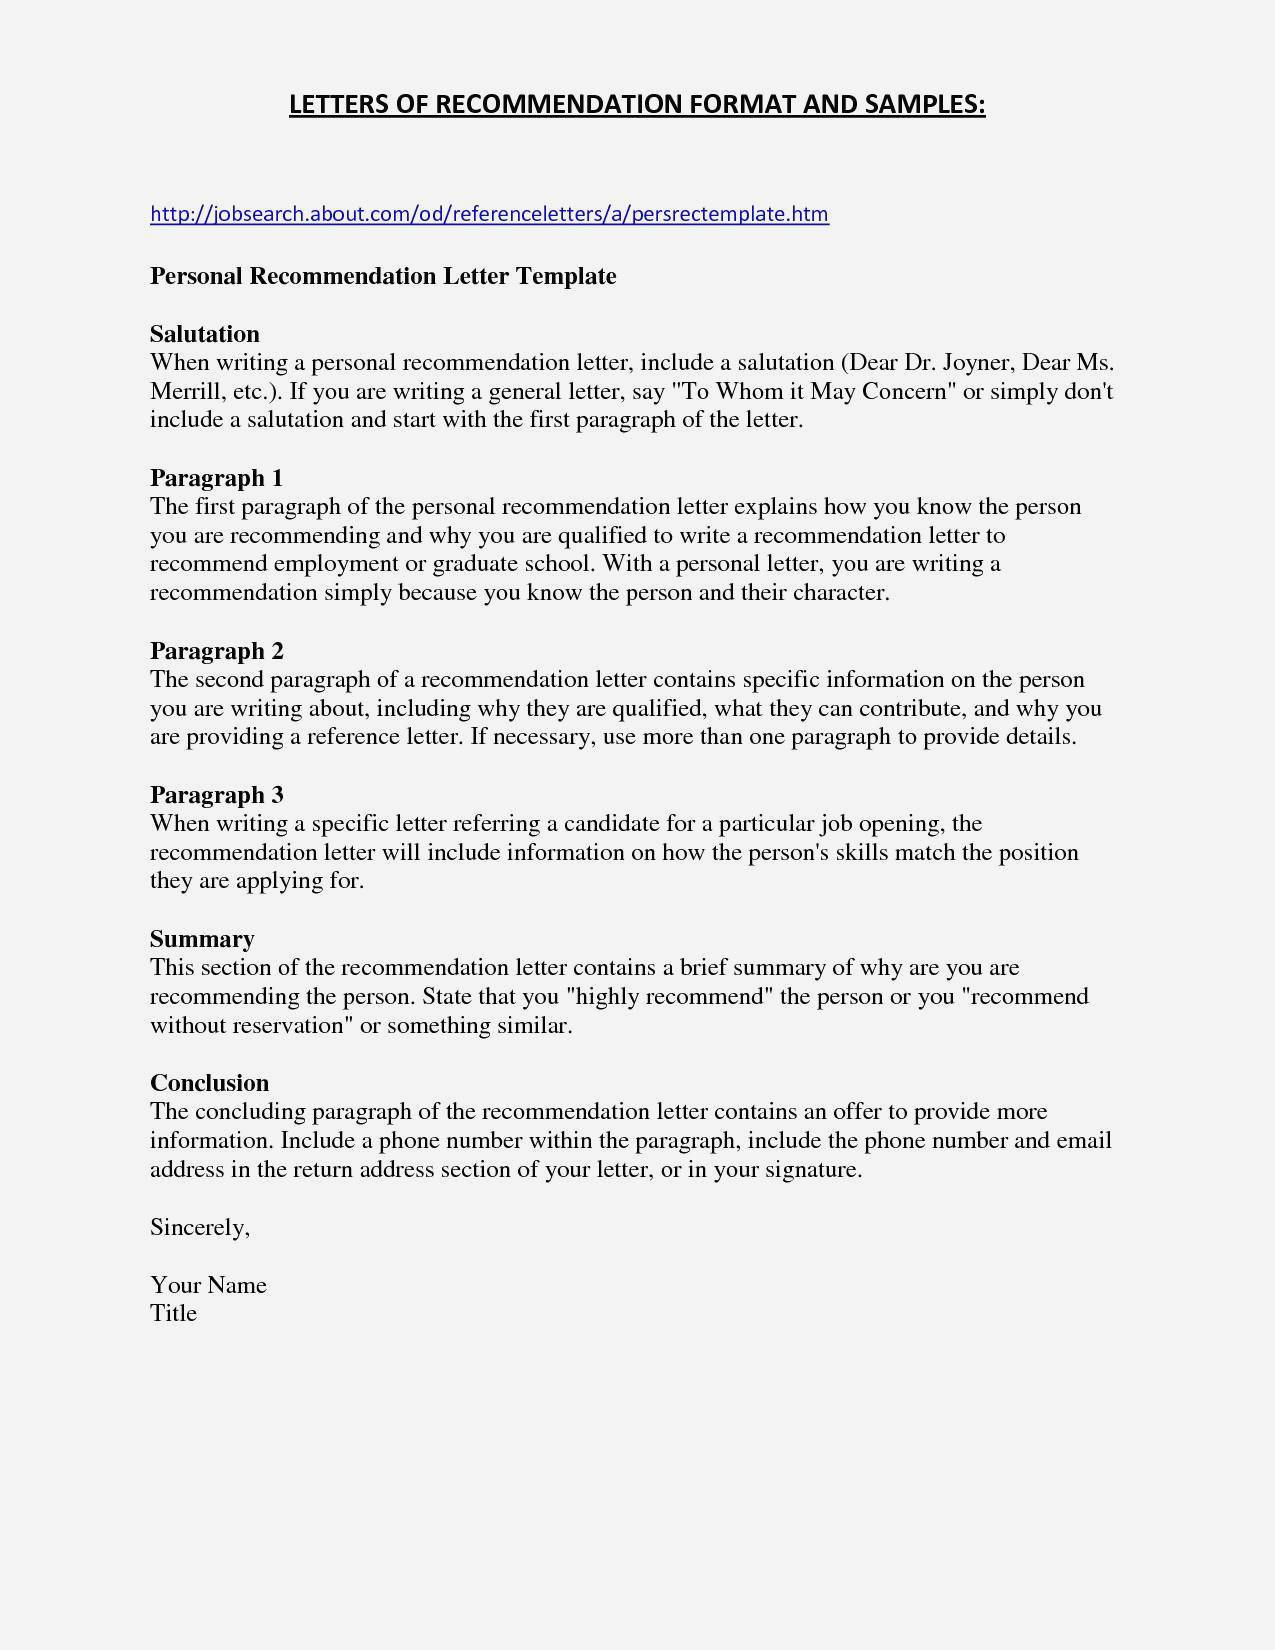 Open Office Resume Template Free Download - Resume Templates Open Fice List Free Resume Template Download Voir